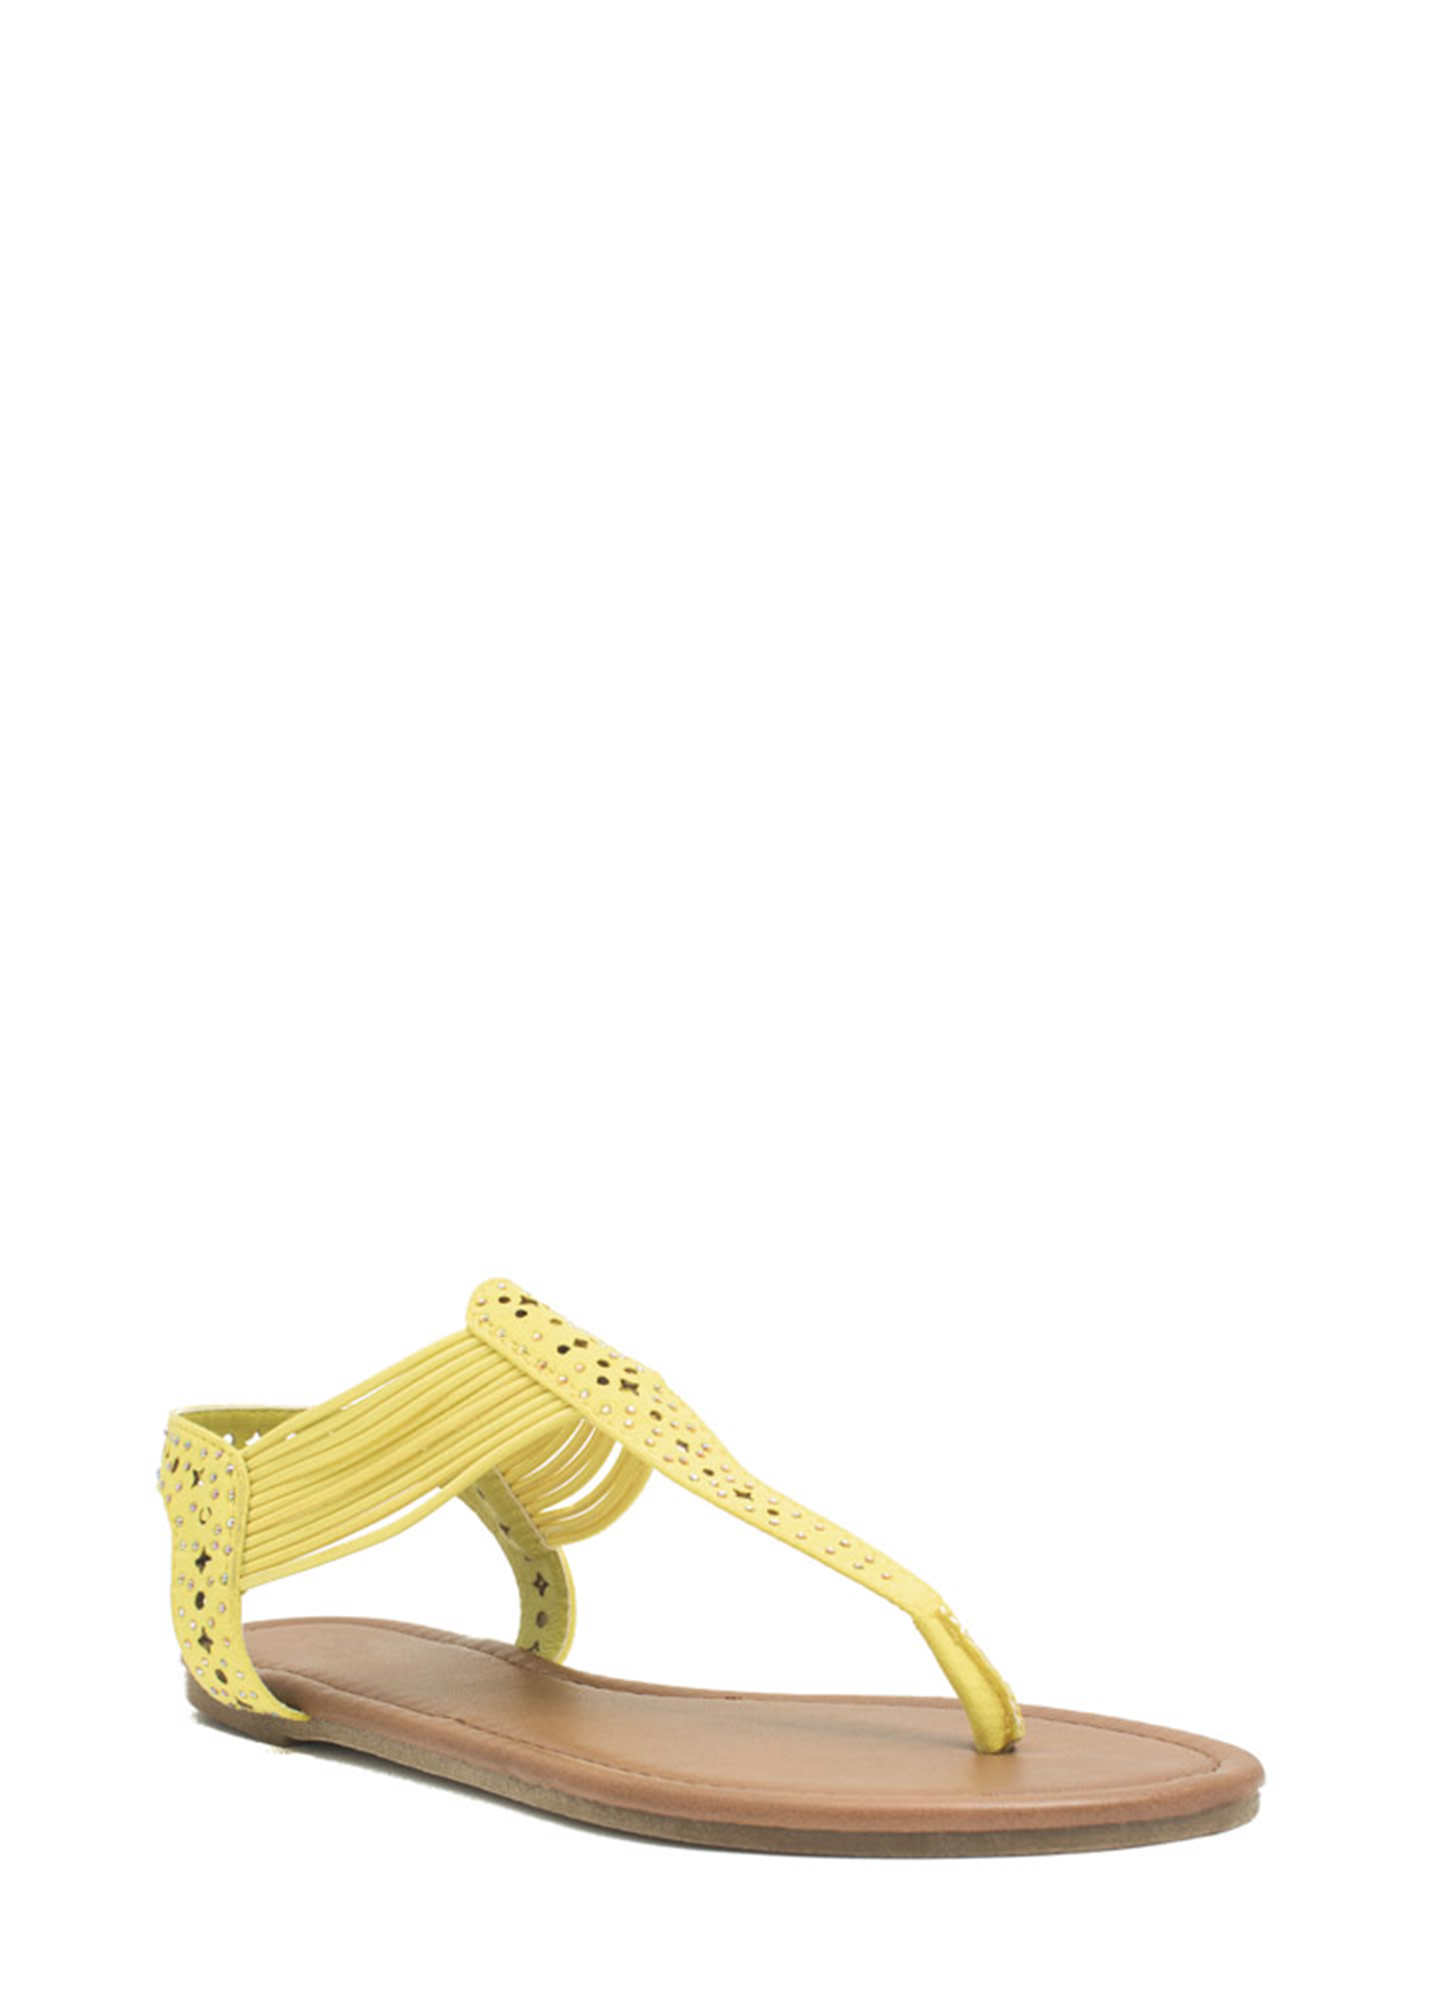 Embellished Cord T-Strap Sandals YELLOW